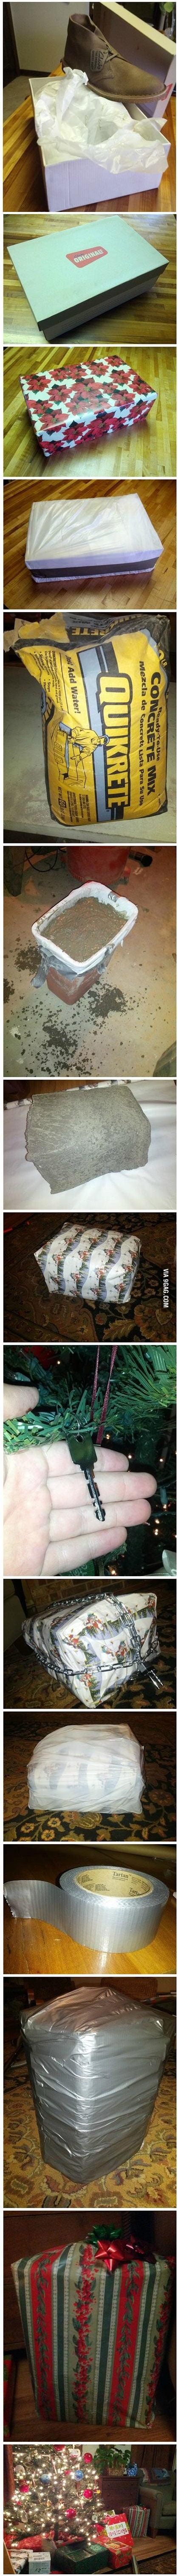 How to wrap a present?